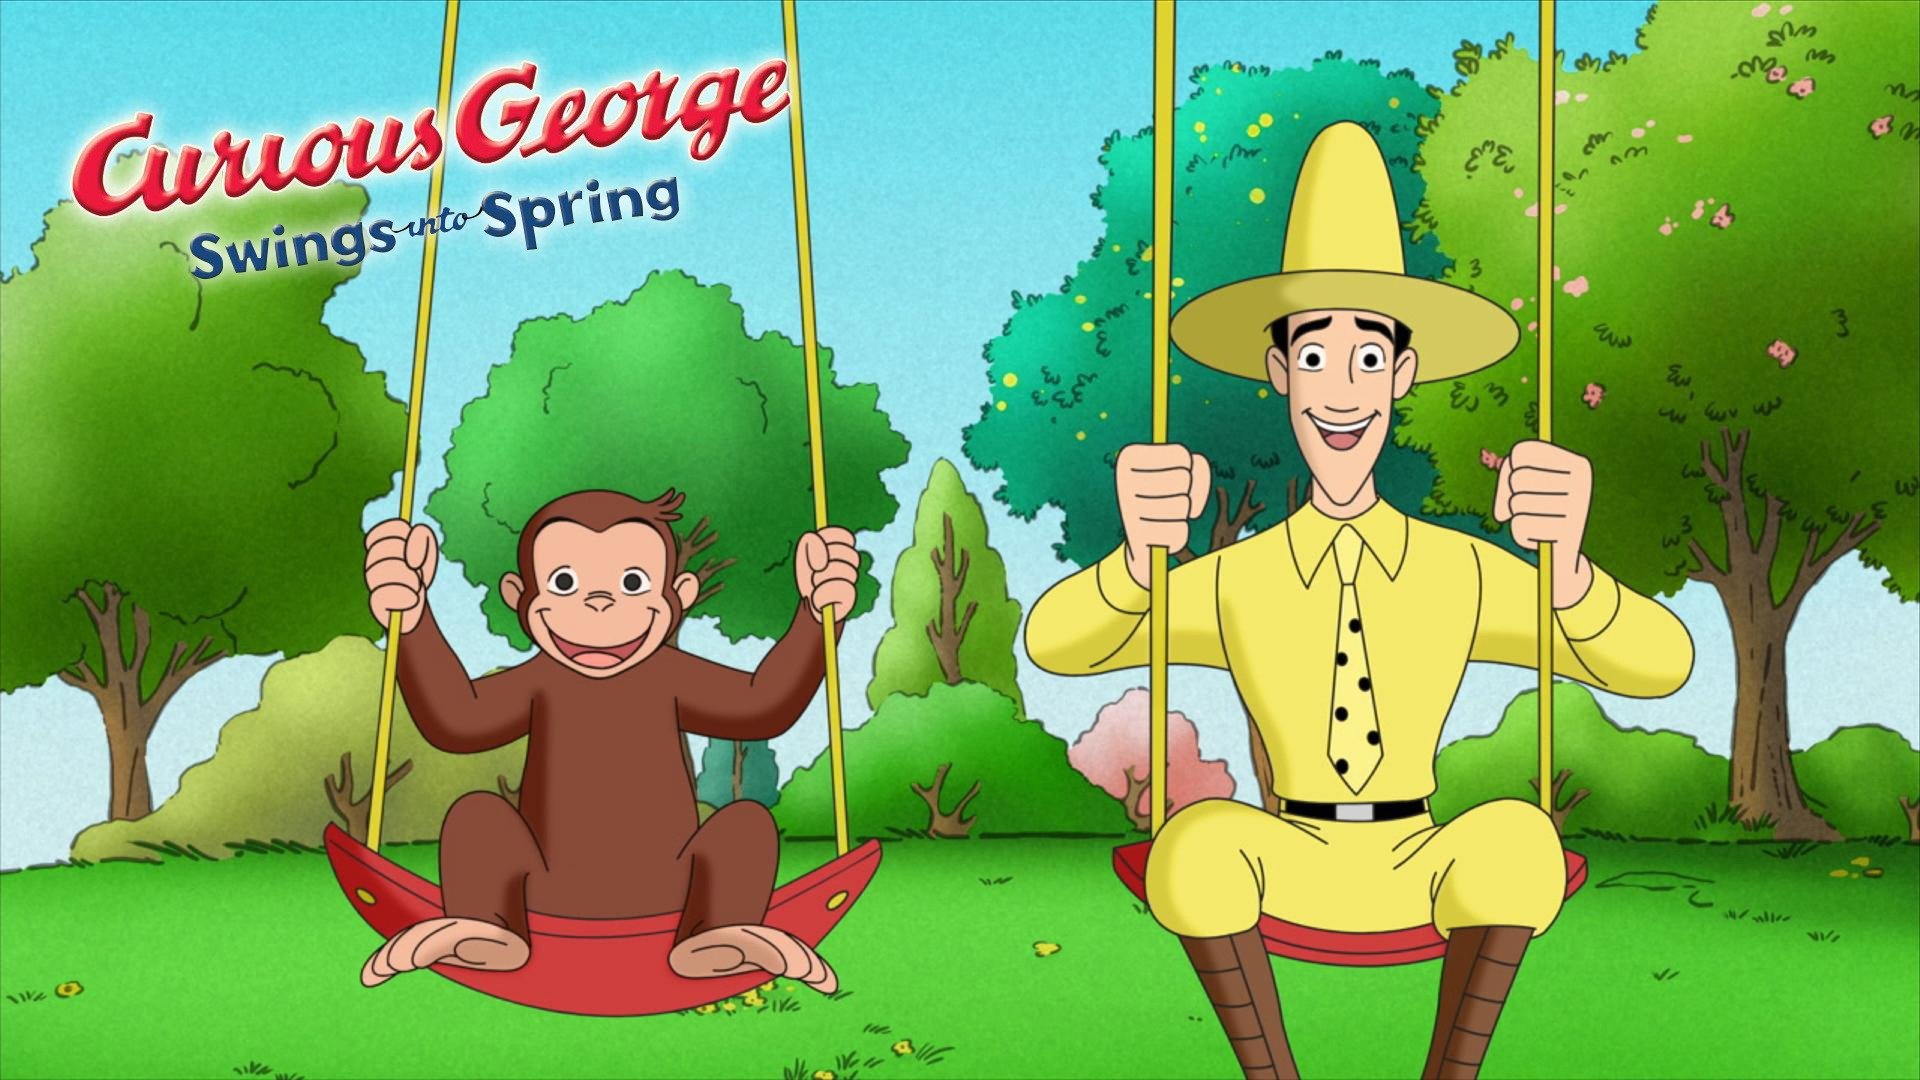 Curious George Swings Into Spring